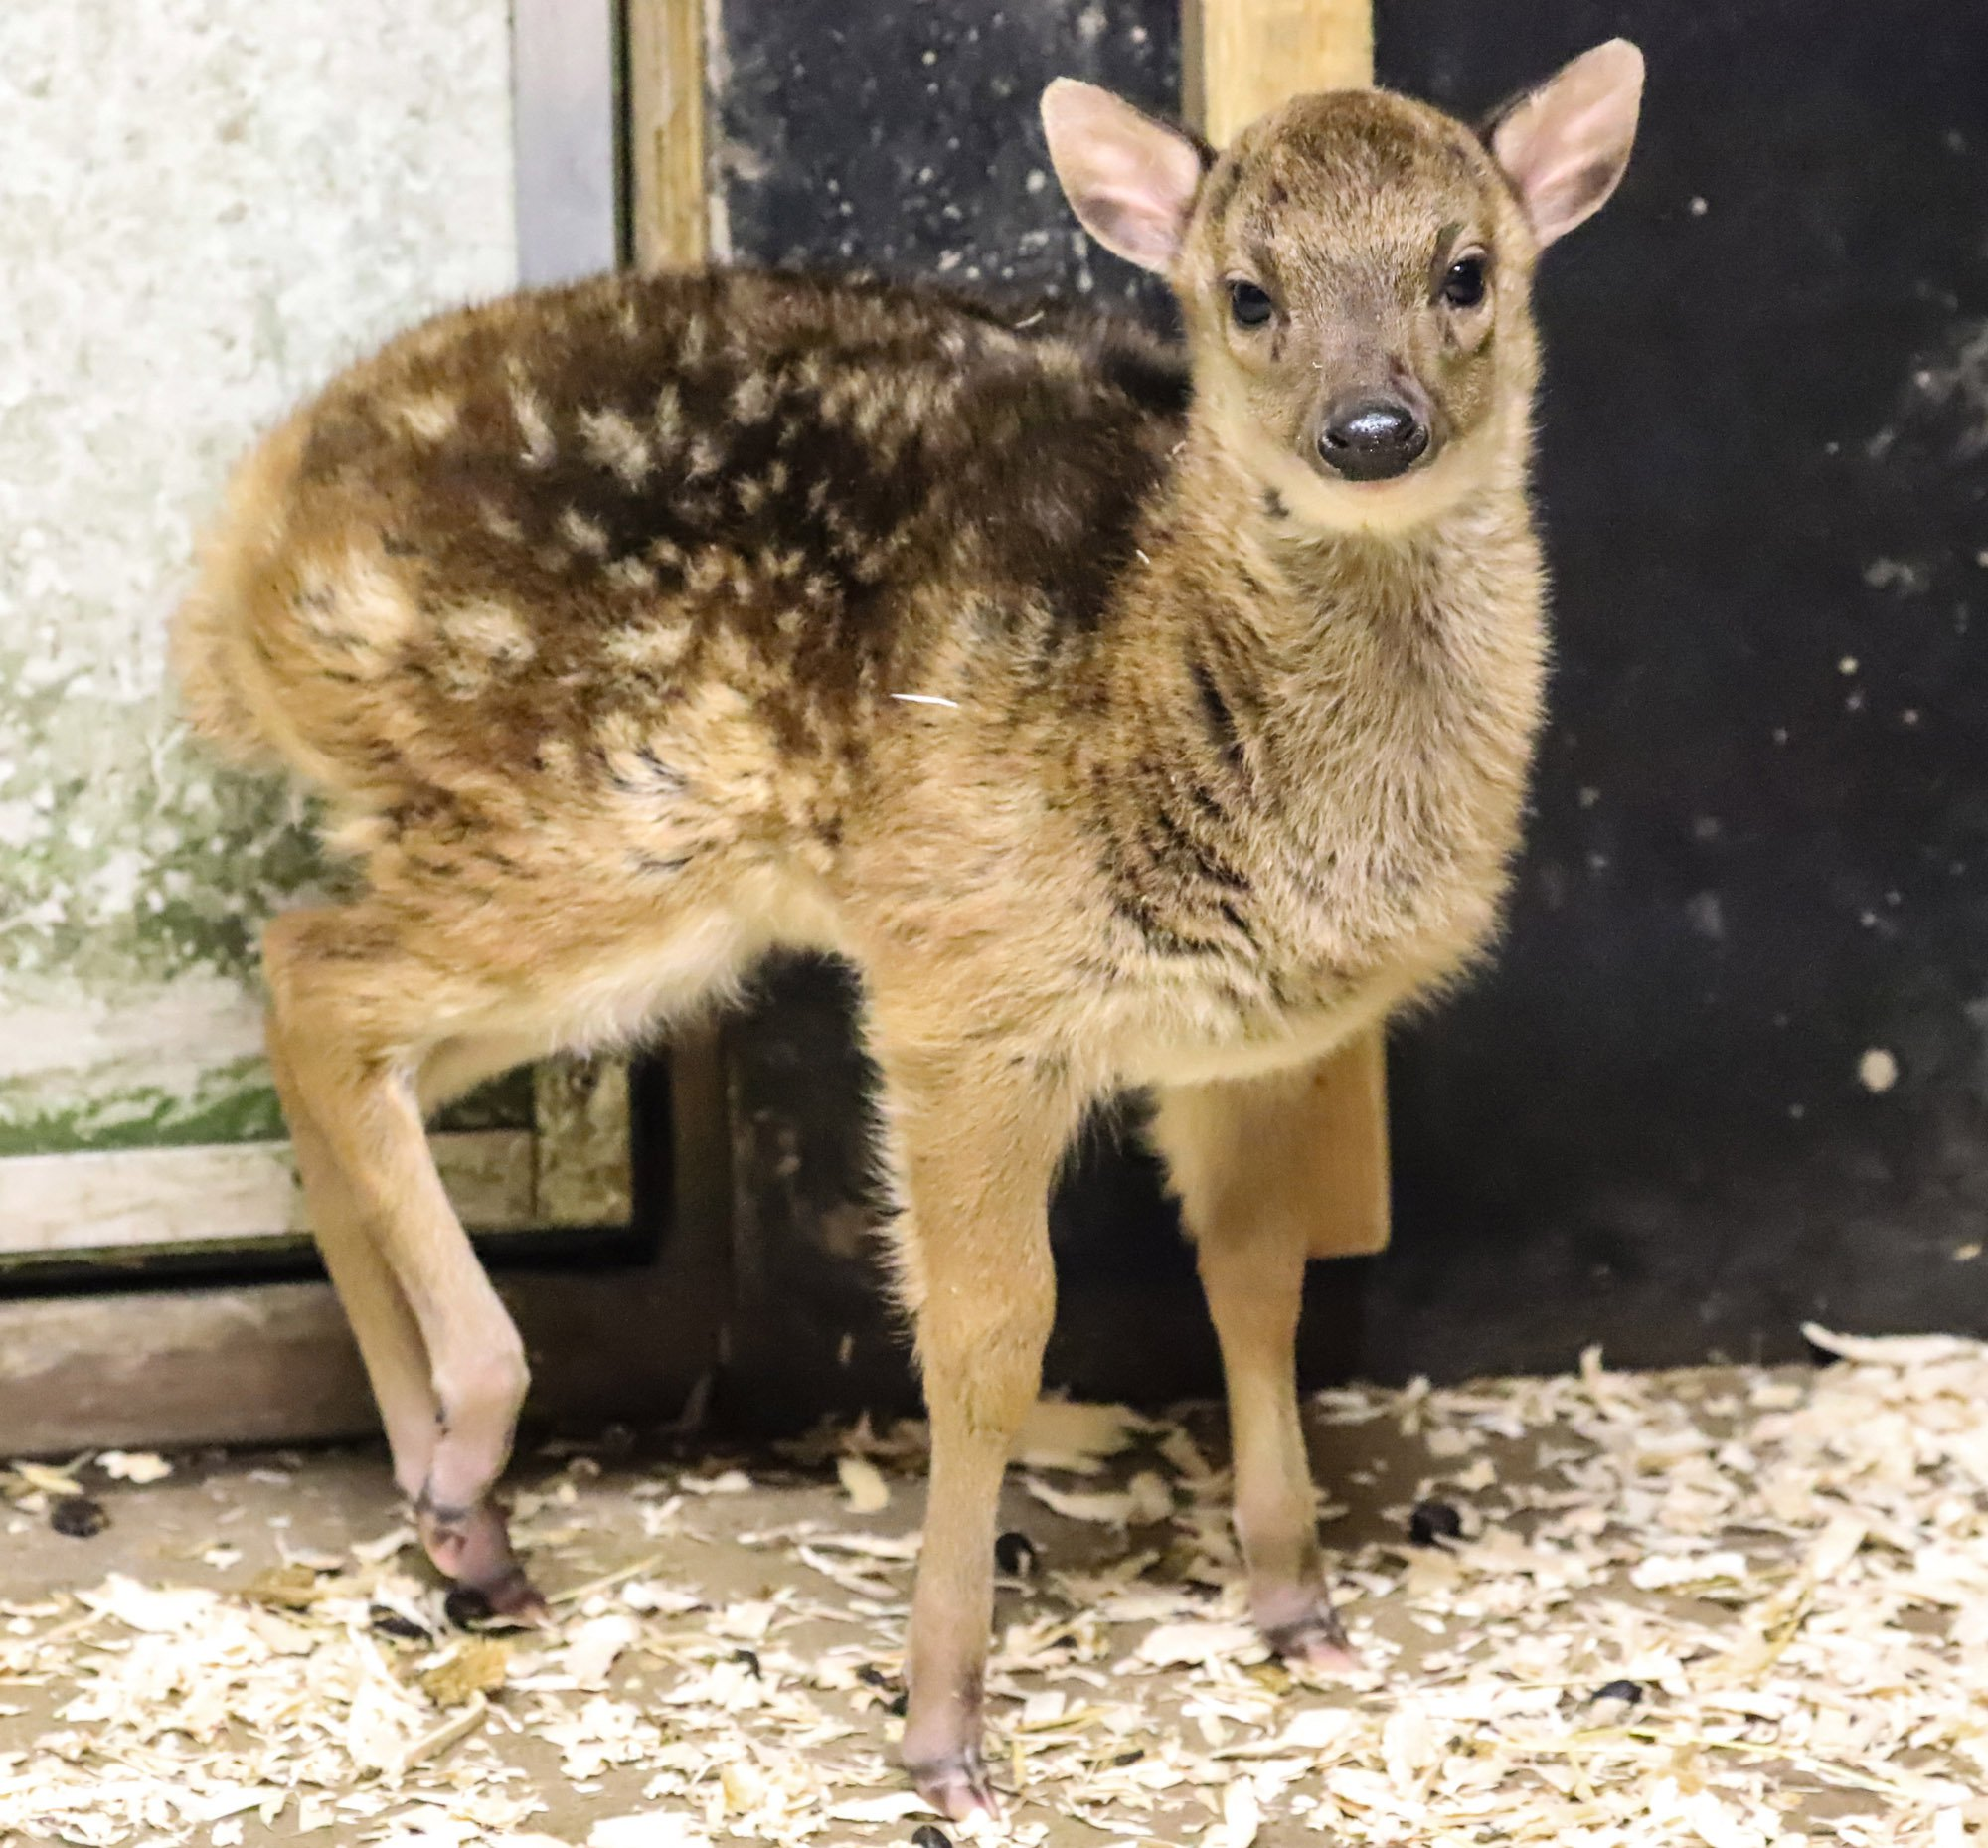 """PIC: APEX 18/02/2019 One of the rarest species of deer in the world has been born at a British zoo. The Philippine spotted deer was born at Newquay Zoo in Cornwall and is hailed as another breeding success for the Cornish charity zoo and the first of this species to be born anywhere in the UK this year.?? This is one of the rarest deer species in the world, classified as Endangered by the International Union for Conservation of Nature. It???s thought that fewer than 2,500 are left in the wild, due to illegal hunting and deforestation.?? The Philippine spotted deer, also known as Prince Alfred???s deer or Visayan spotted deer, was born on January 10th. Keeper Tracey Twomey said: ???With the Philippine spotted deer being one of the most globally threatened deer species, each birth is extremely important for the conservation of the species. """"Mother and baby are doing very well, both are strong and healthy. """"We look forward to seeing this little one grow up and hopefully have little ones of her own.??? SEE STORY BY APEX NEWS - 01392 823144 ---------------------------------------------------- APEX NEWS AND PICTURES NEWS DESK: 01392 823144 PICTURE DESK: 01392 823145"""